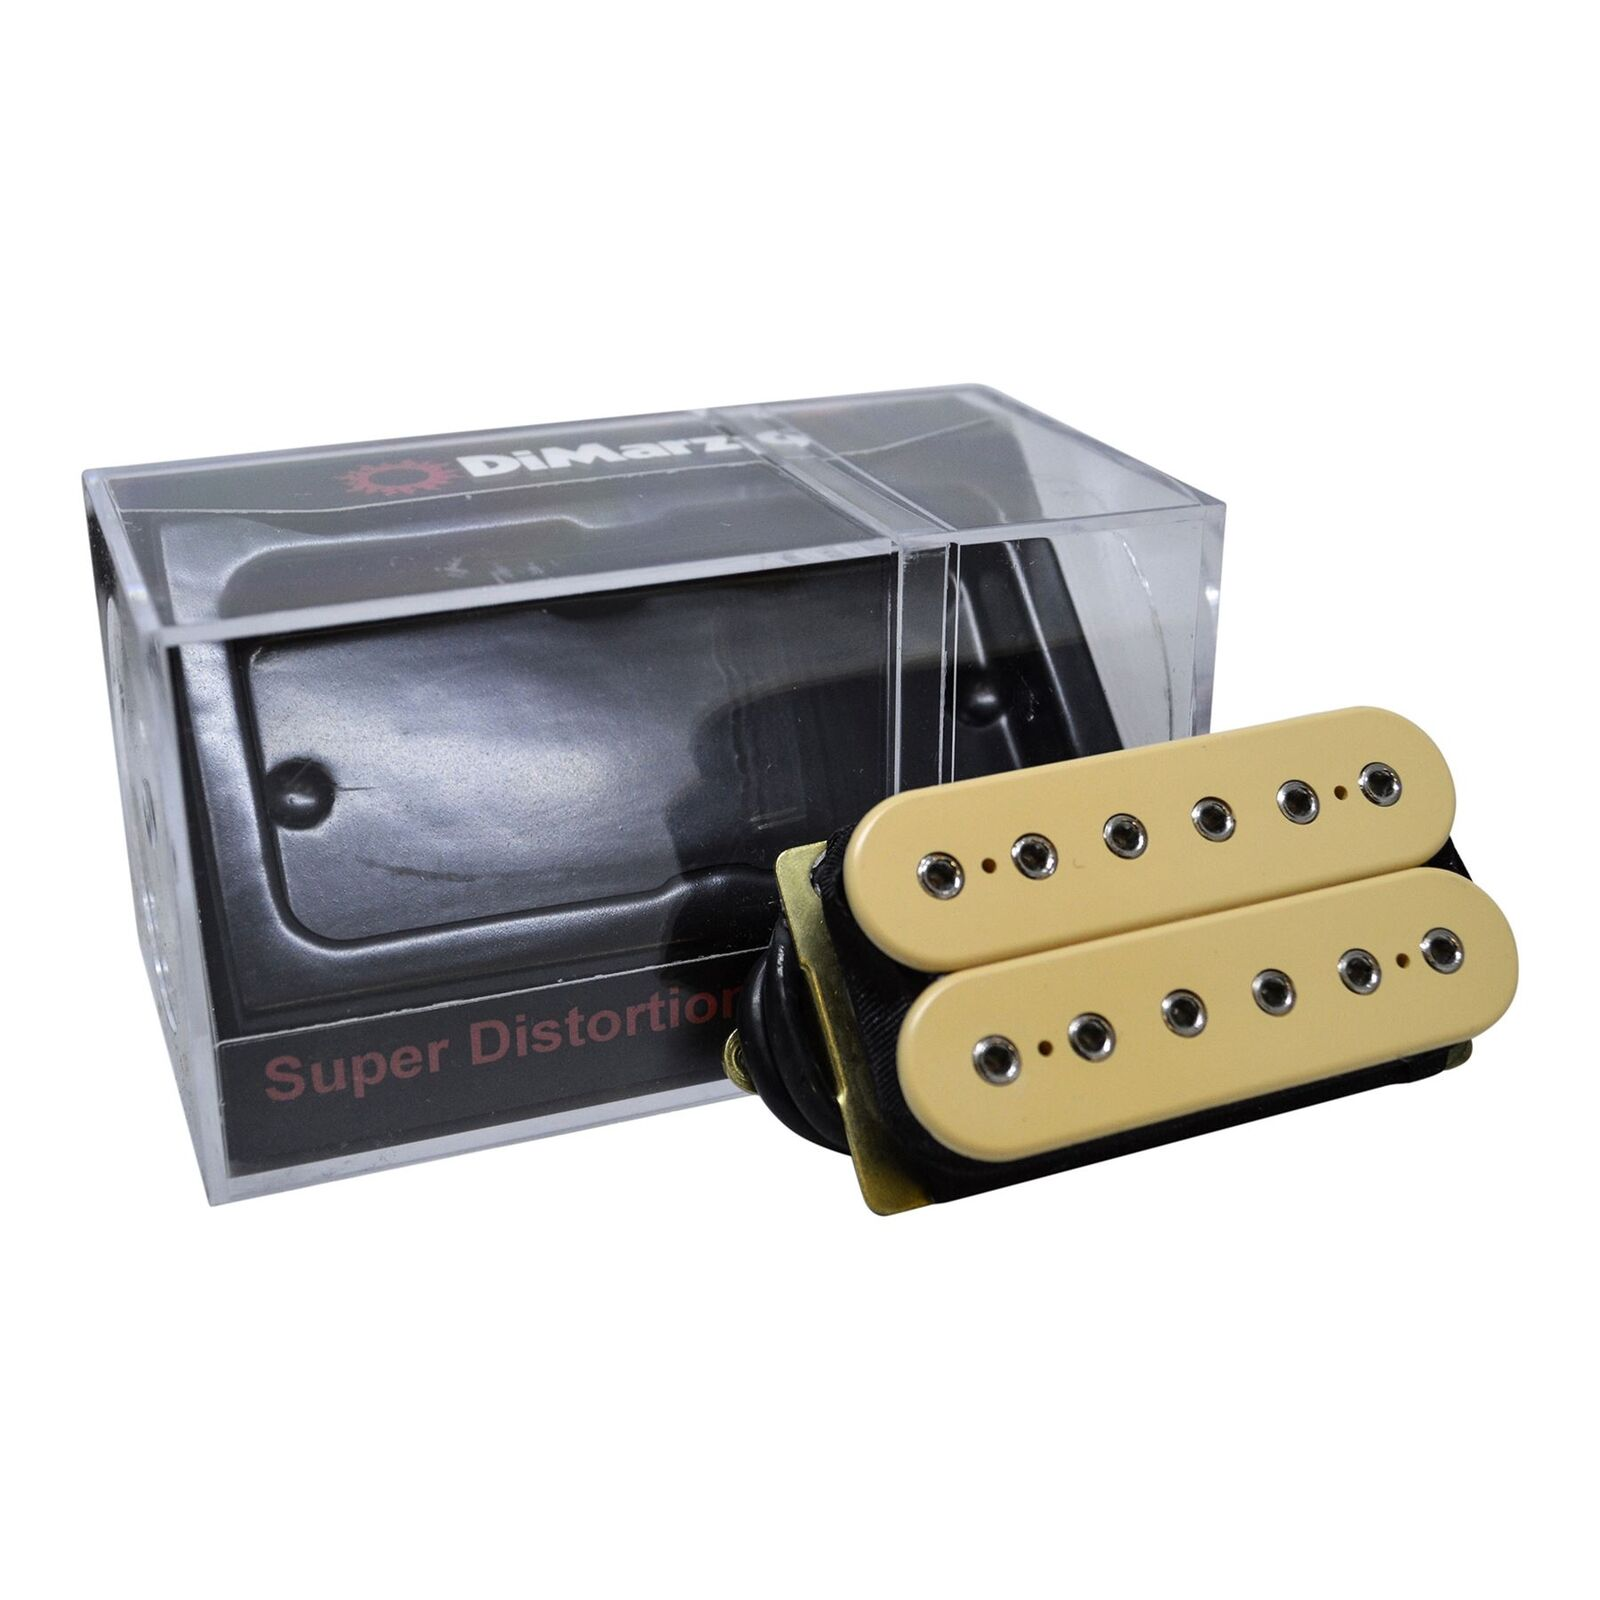 Dimarzio Super Distortion Humbucker Guitar Pickup Cream 7799 Hot Wire Wiring 1 Of 6only 2 Available